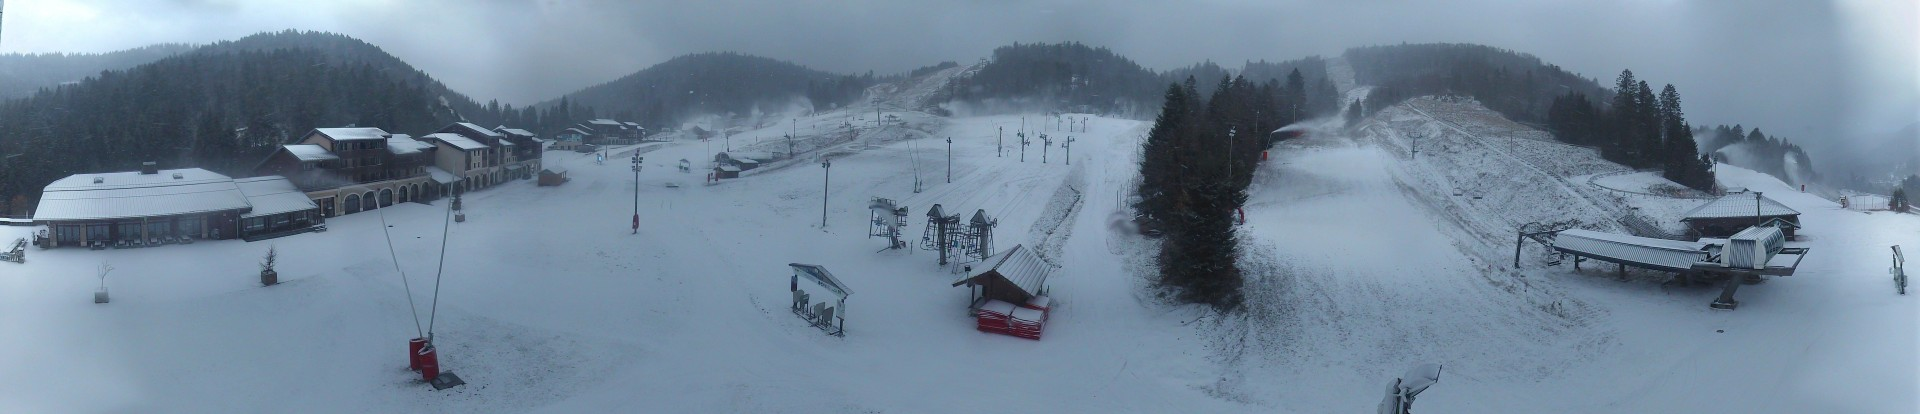 Front de neige - Webcam la Bresse